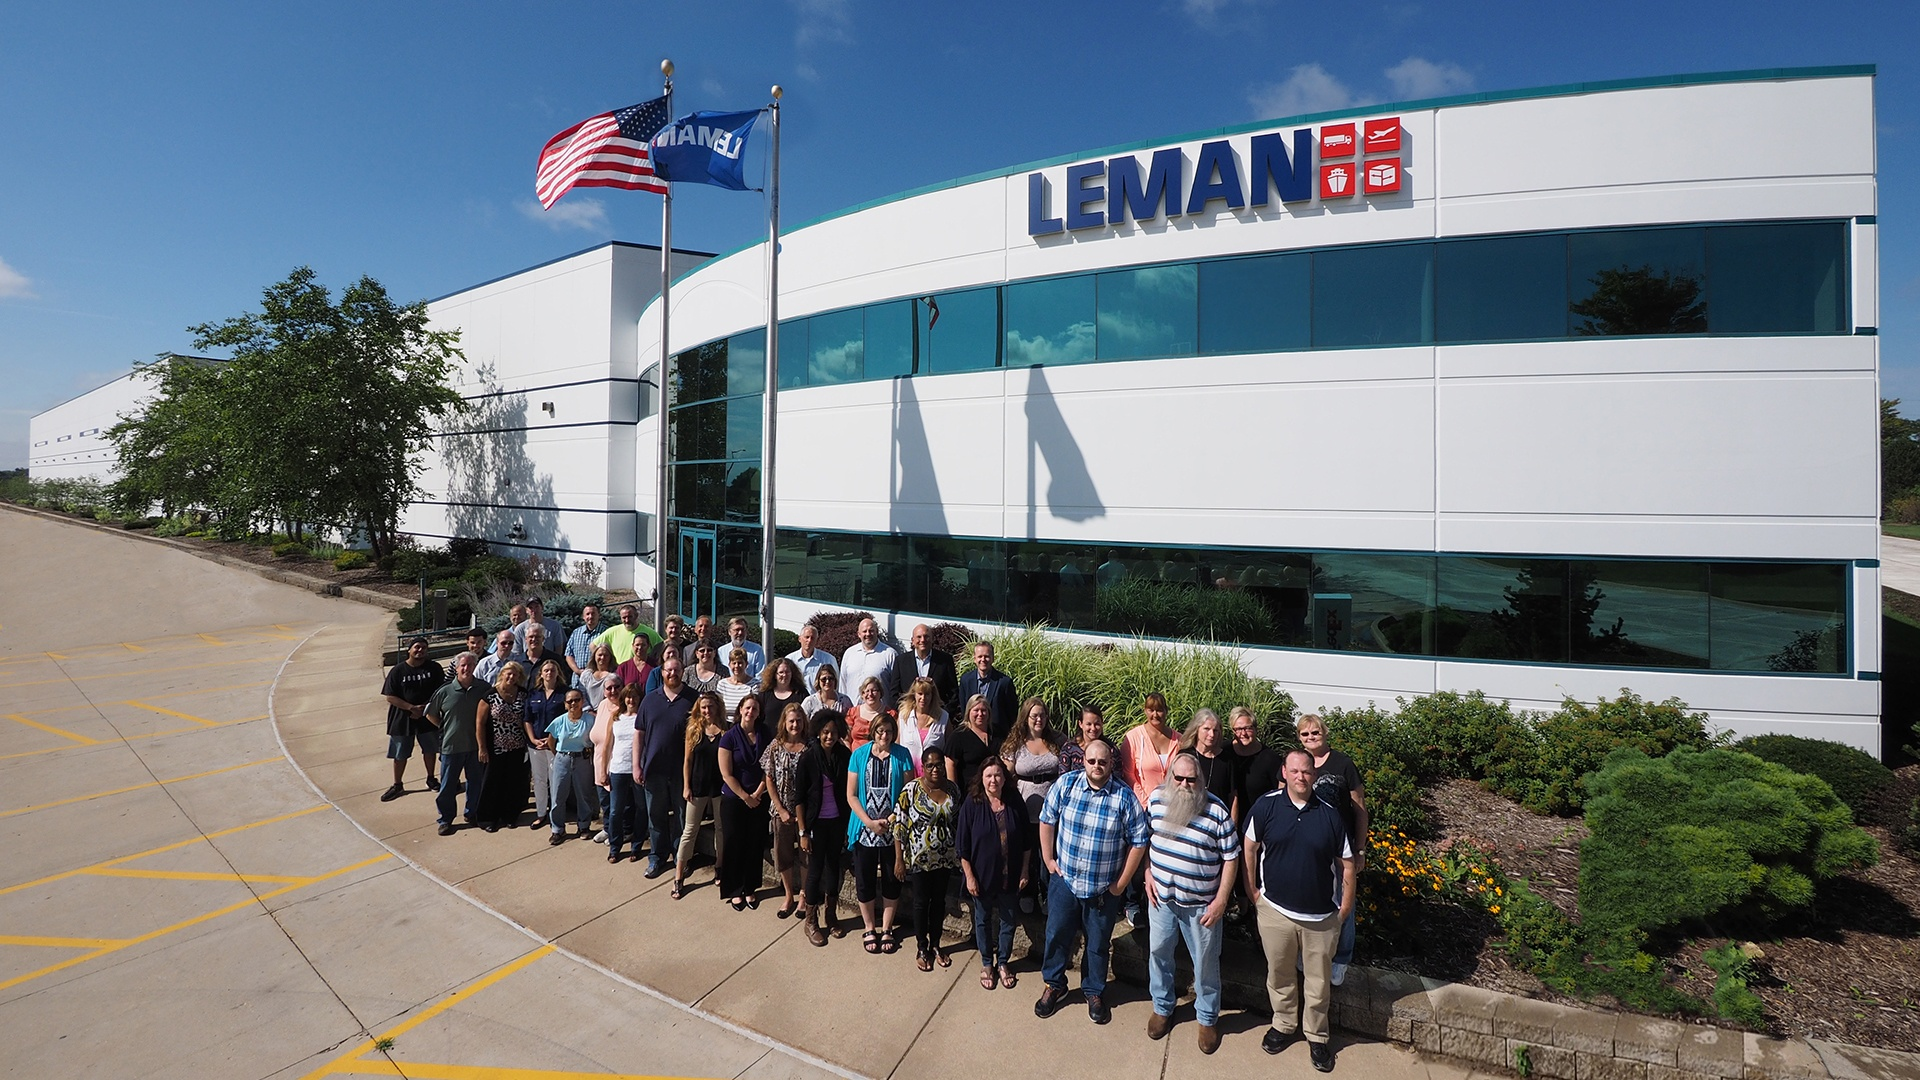 LEMAN STAFF IN FRONT OF BLDG1920x1080.jpeg